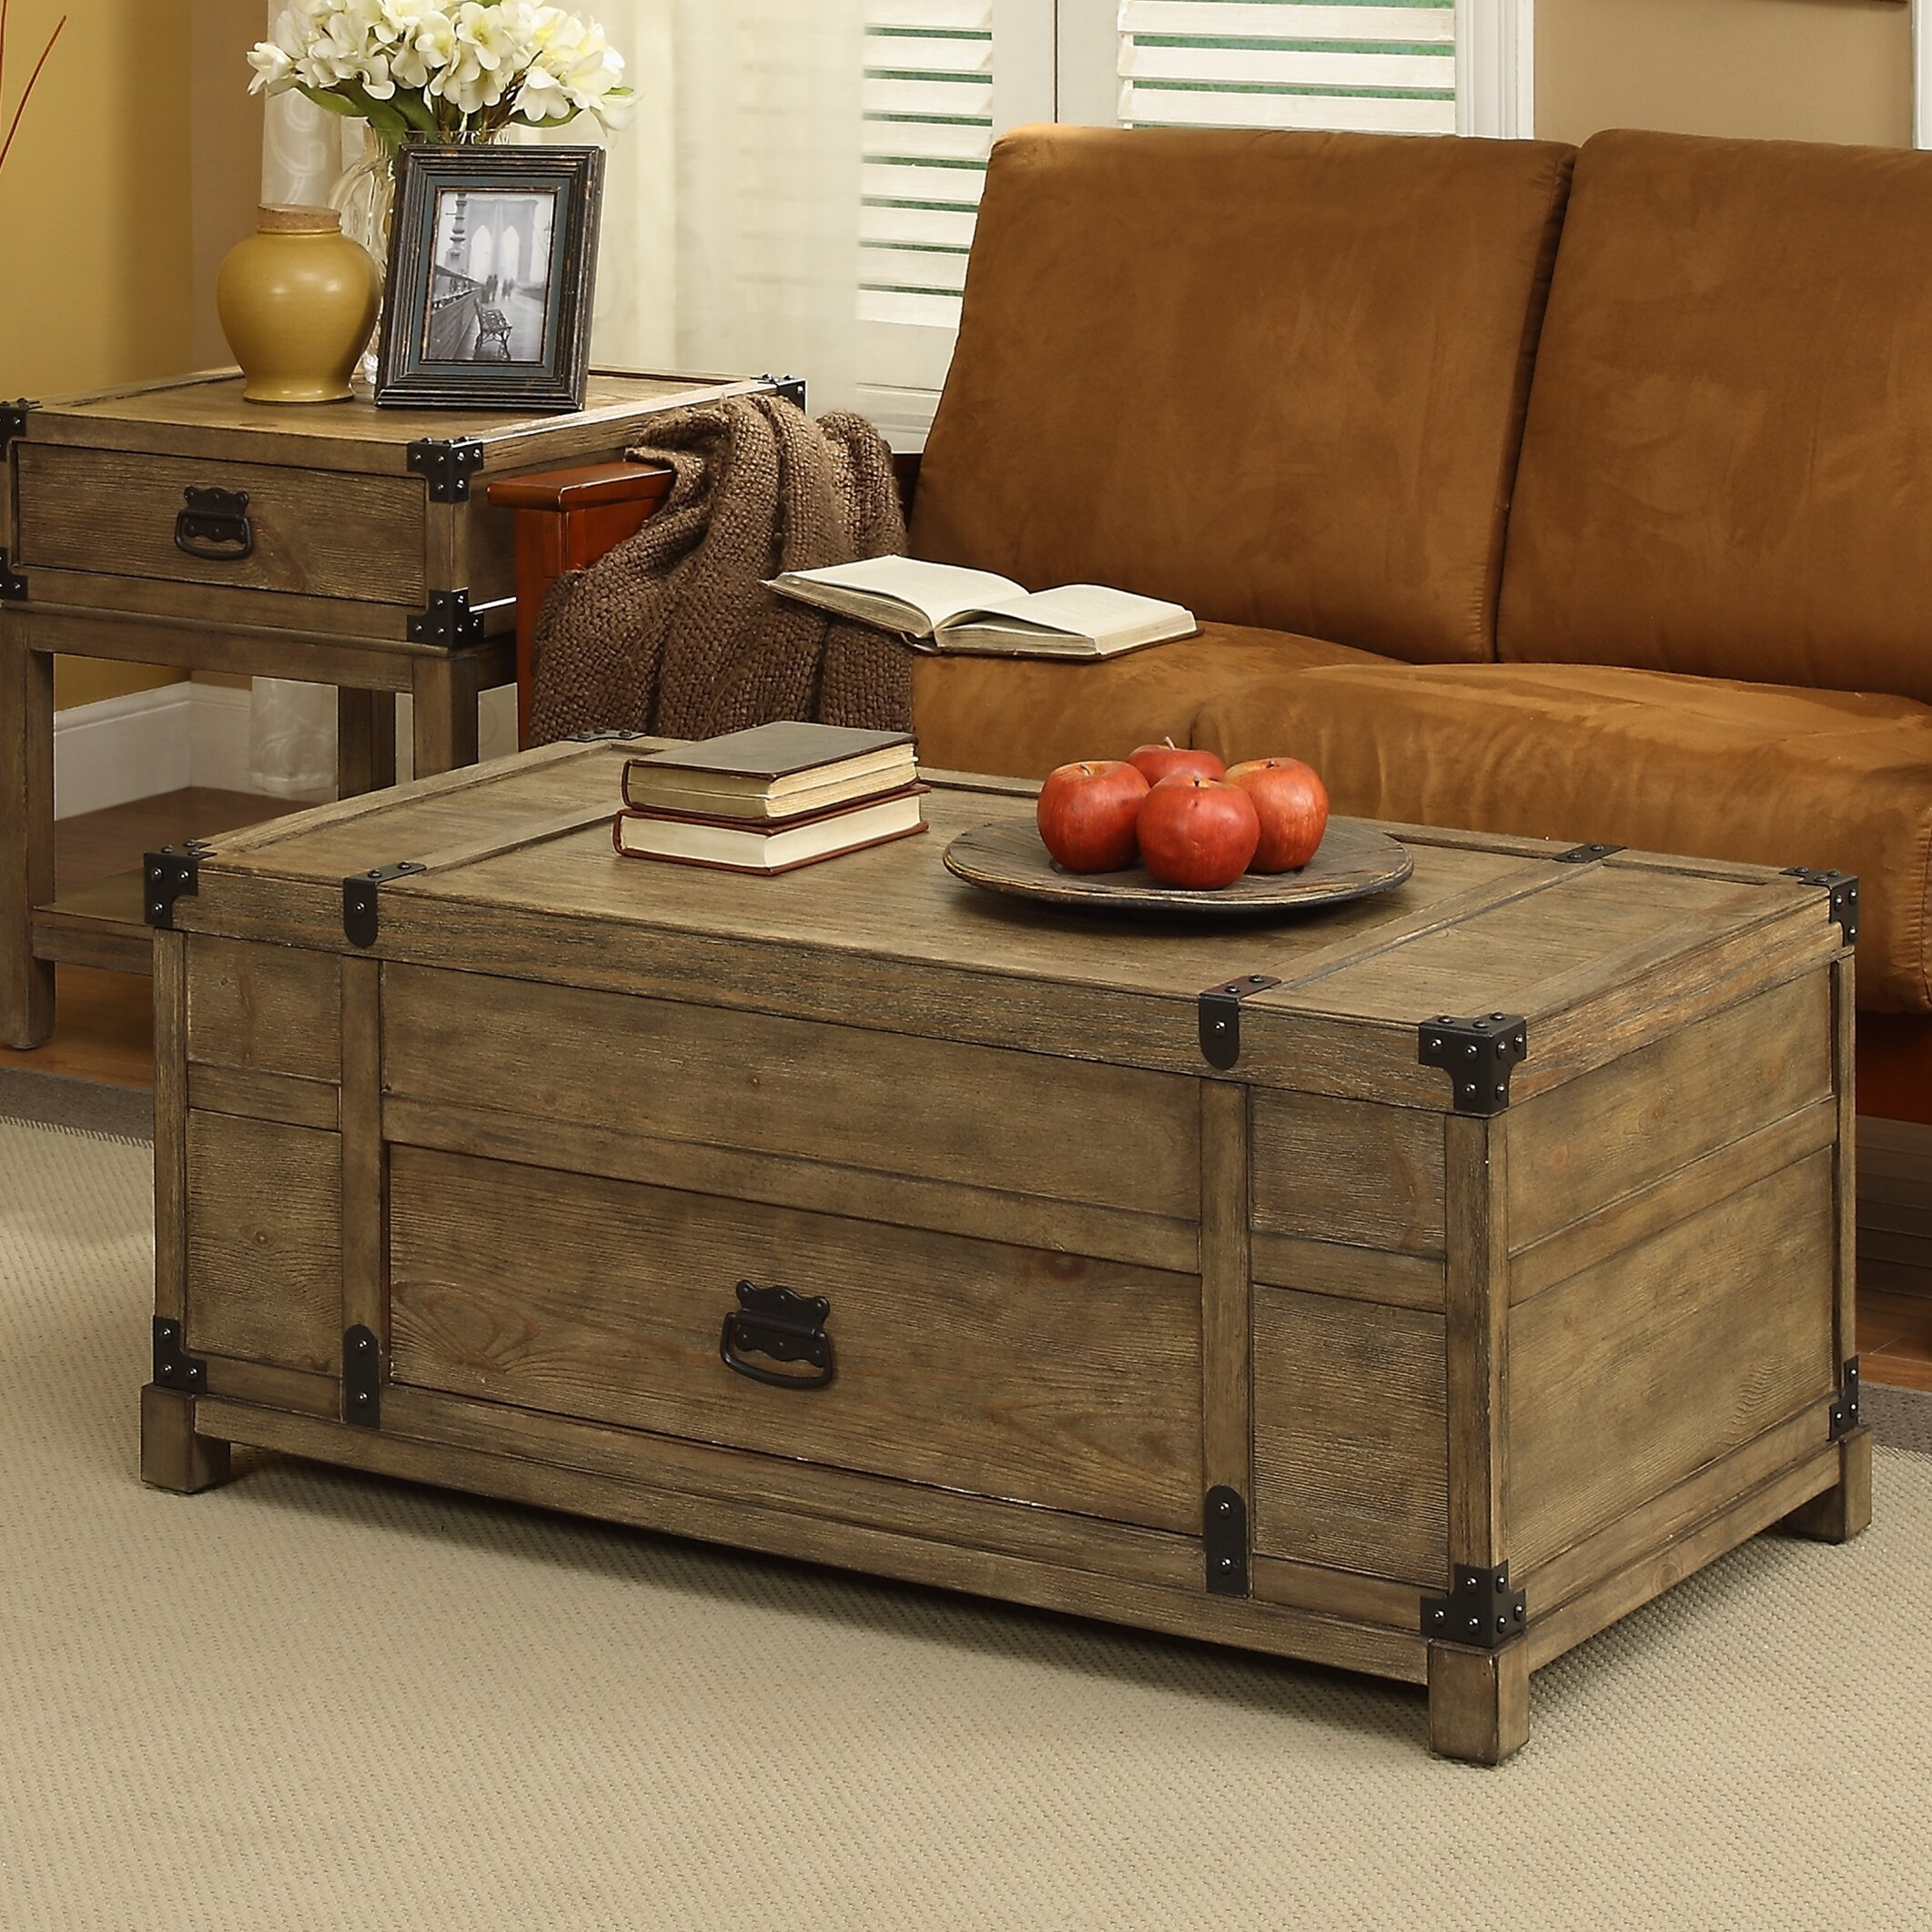 Distressed Trunk Coffee Table   Ideas On Foter